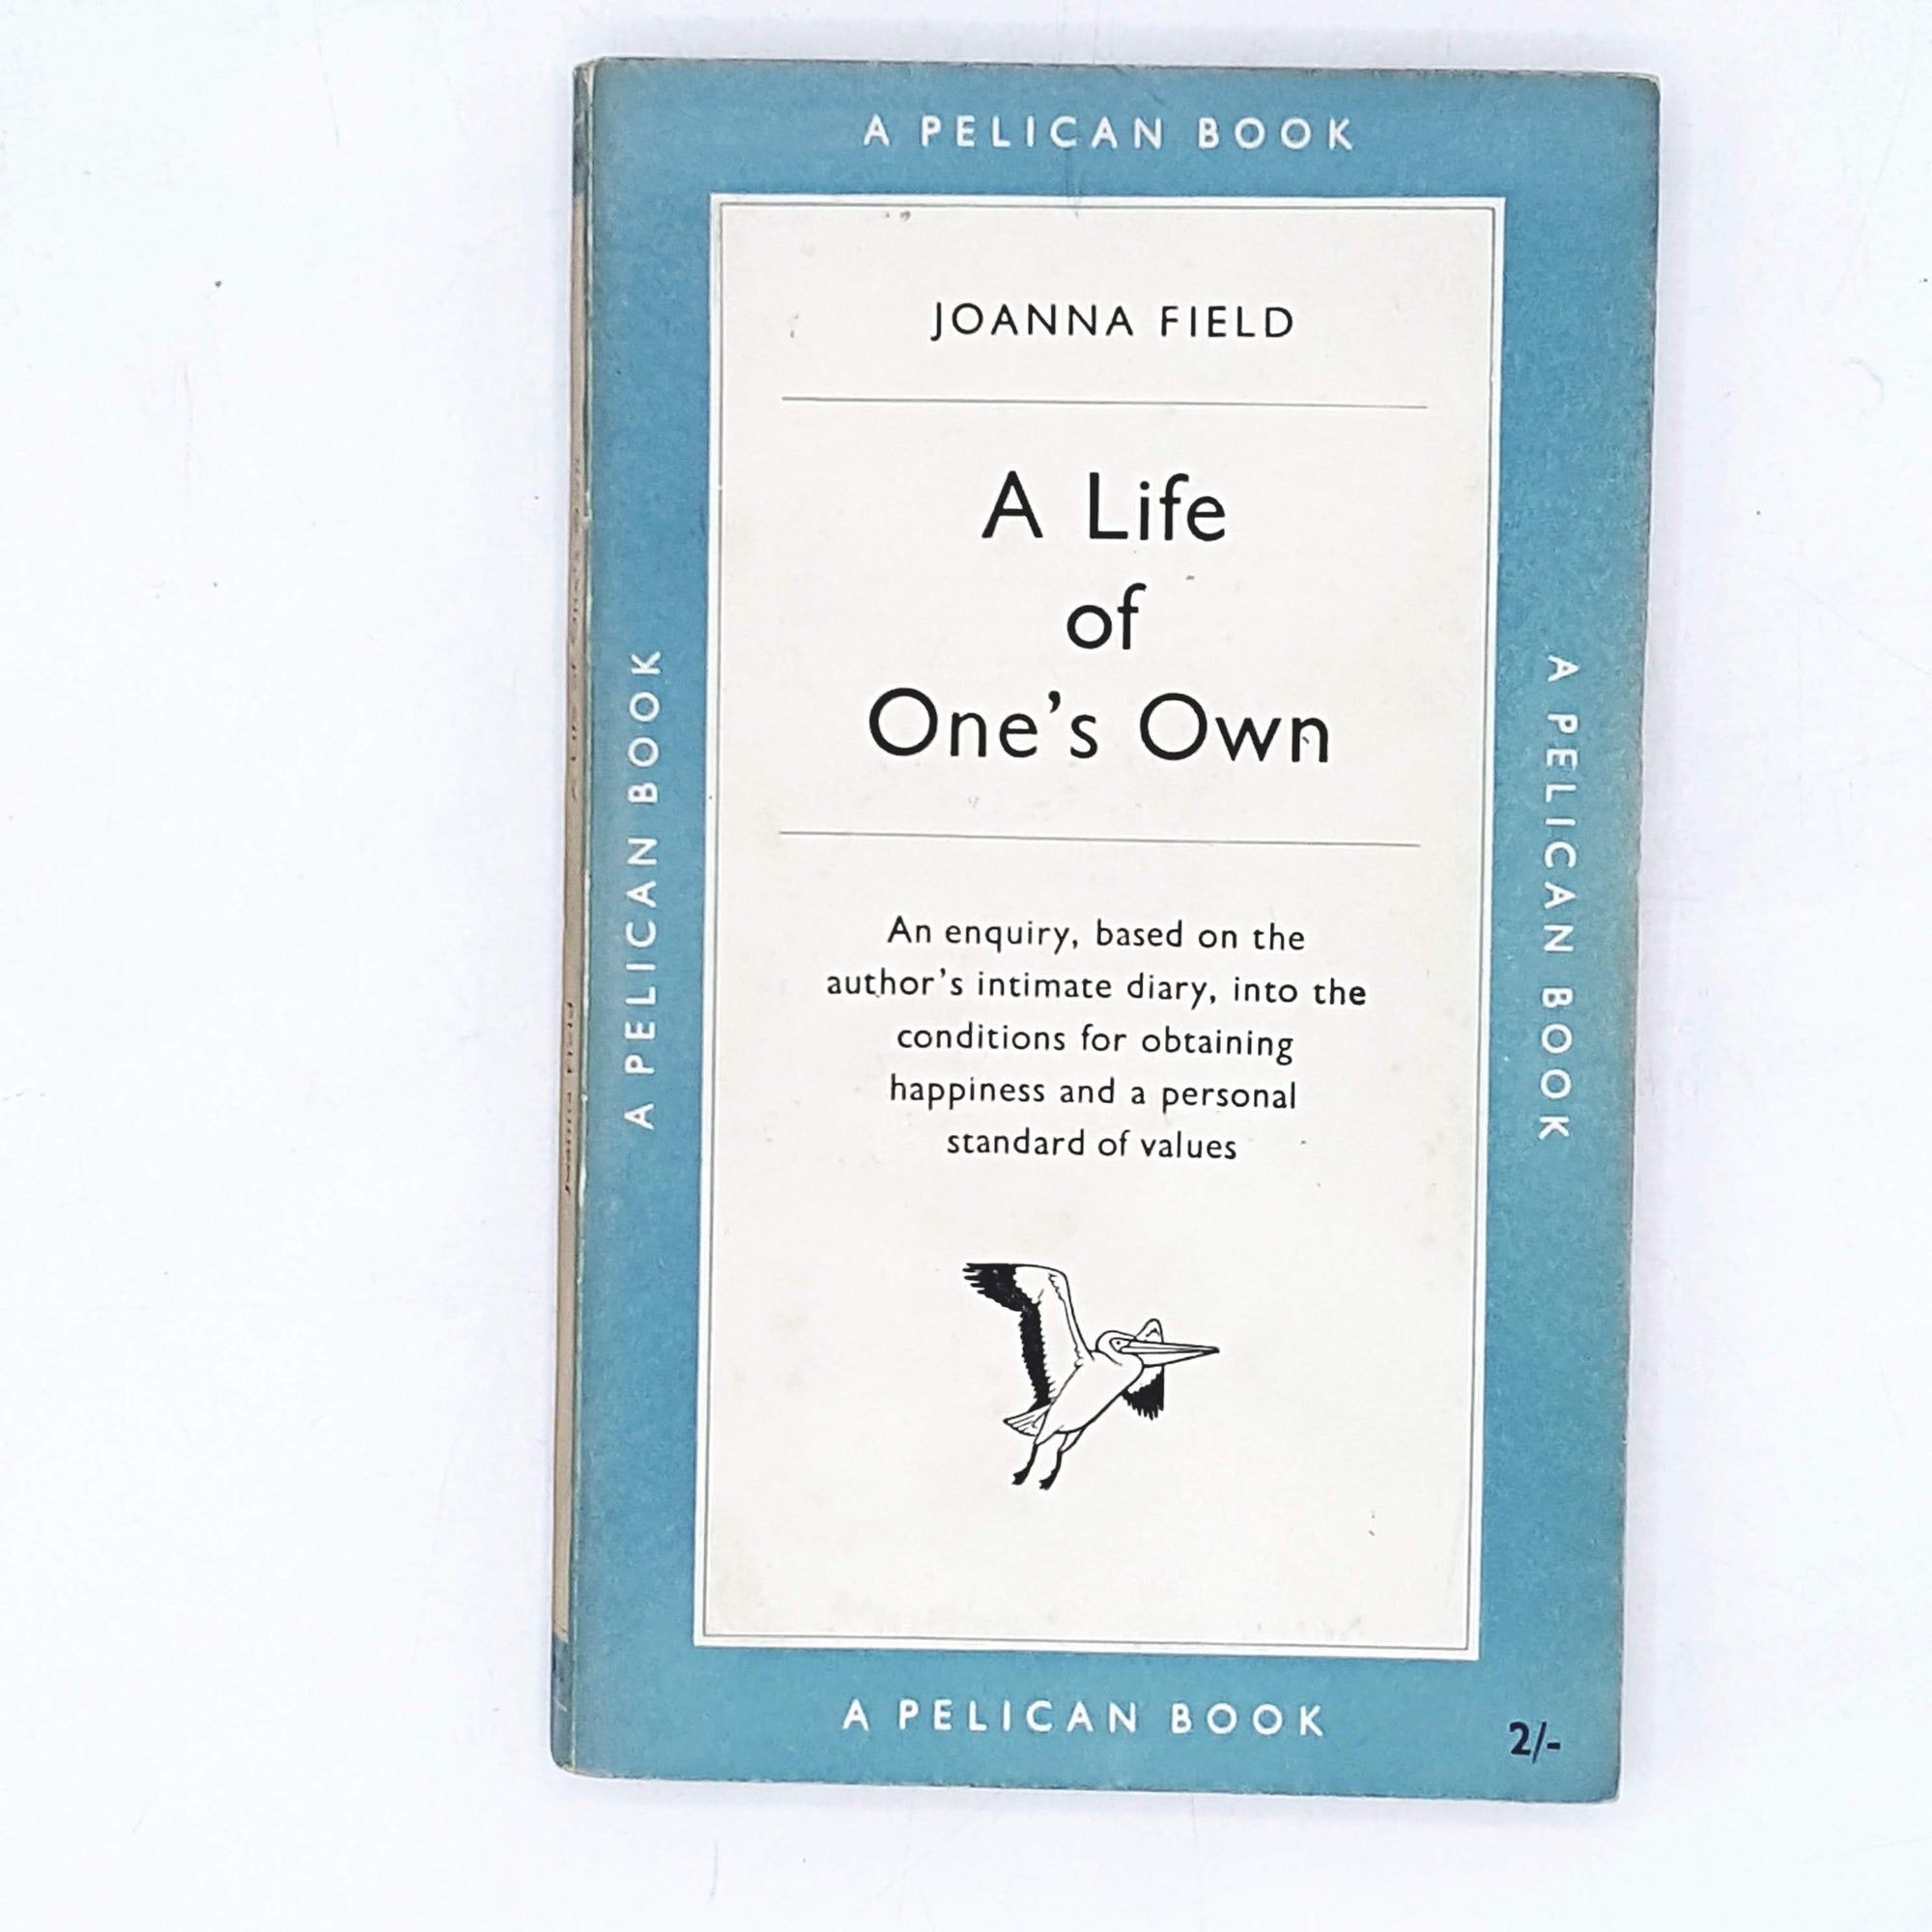 Vintage Pelican A Life of One's Own by Joanna Field 1952